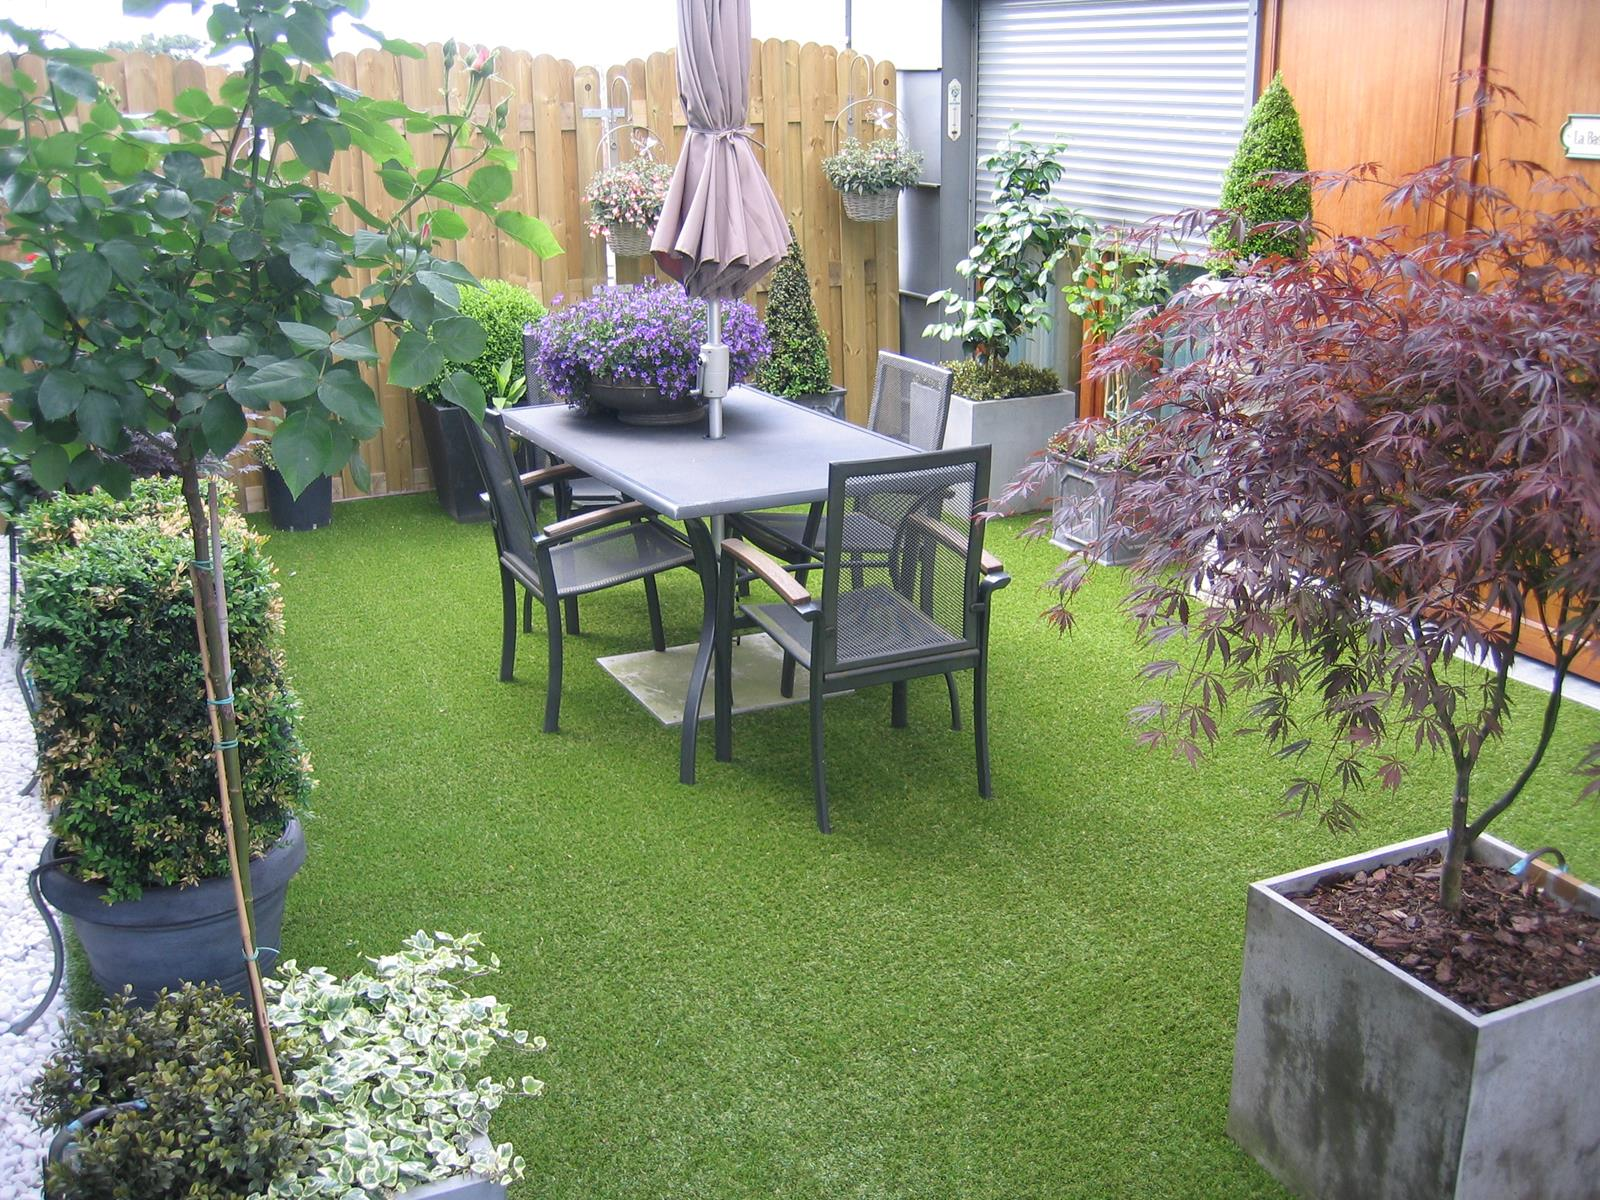 Gazon Terrasse Exemples De Pose De Gazon Synthétique Chez Nos Clients Greenside